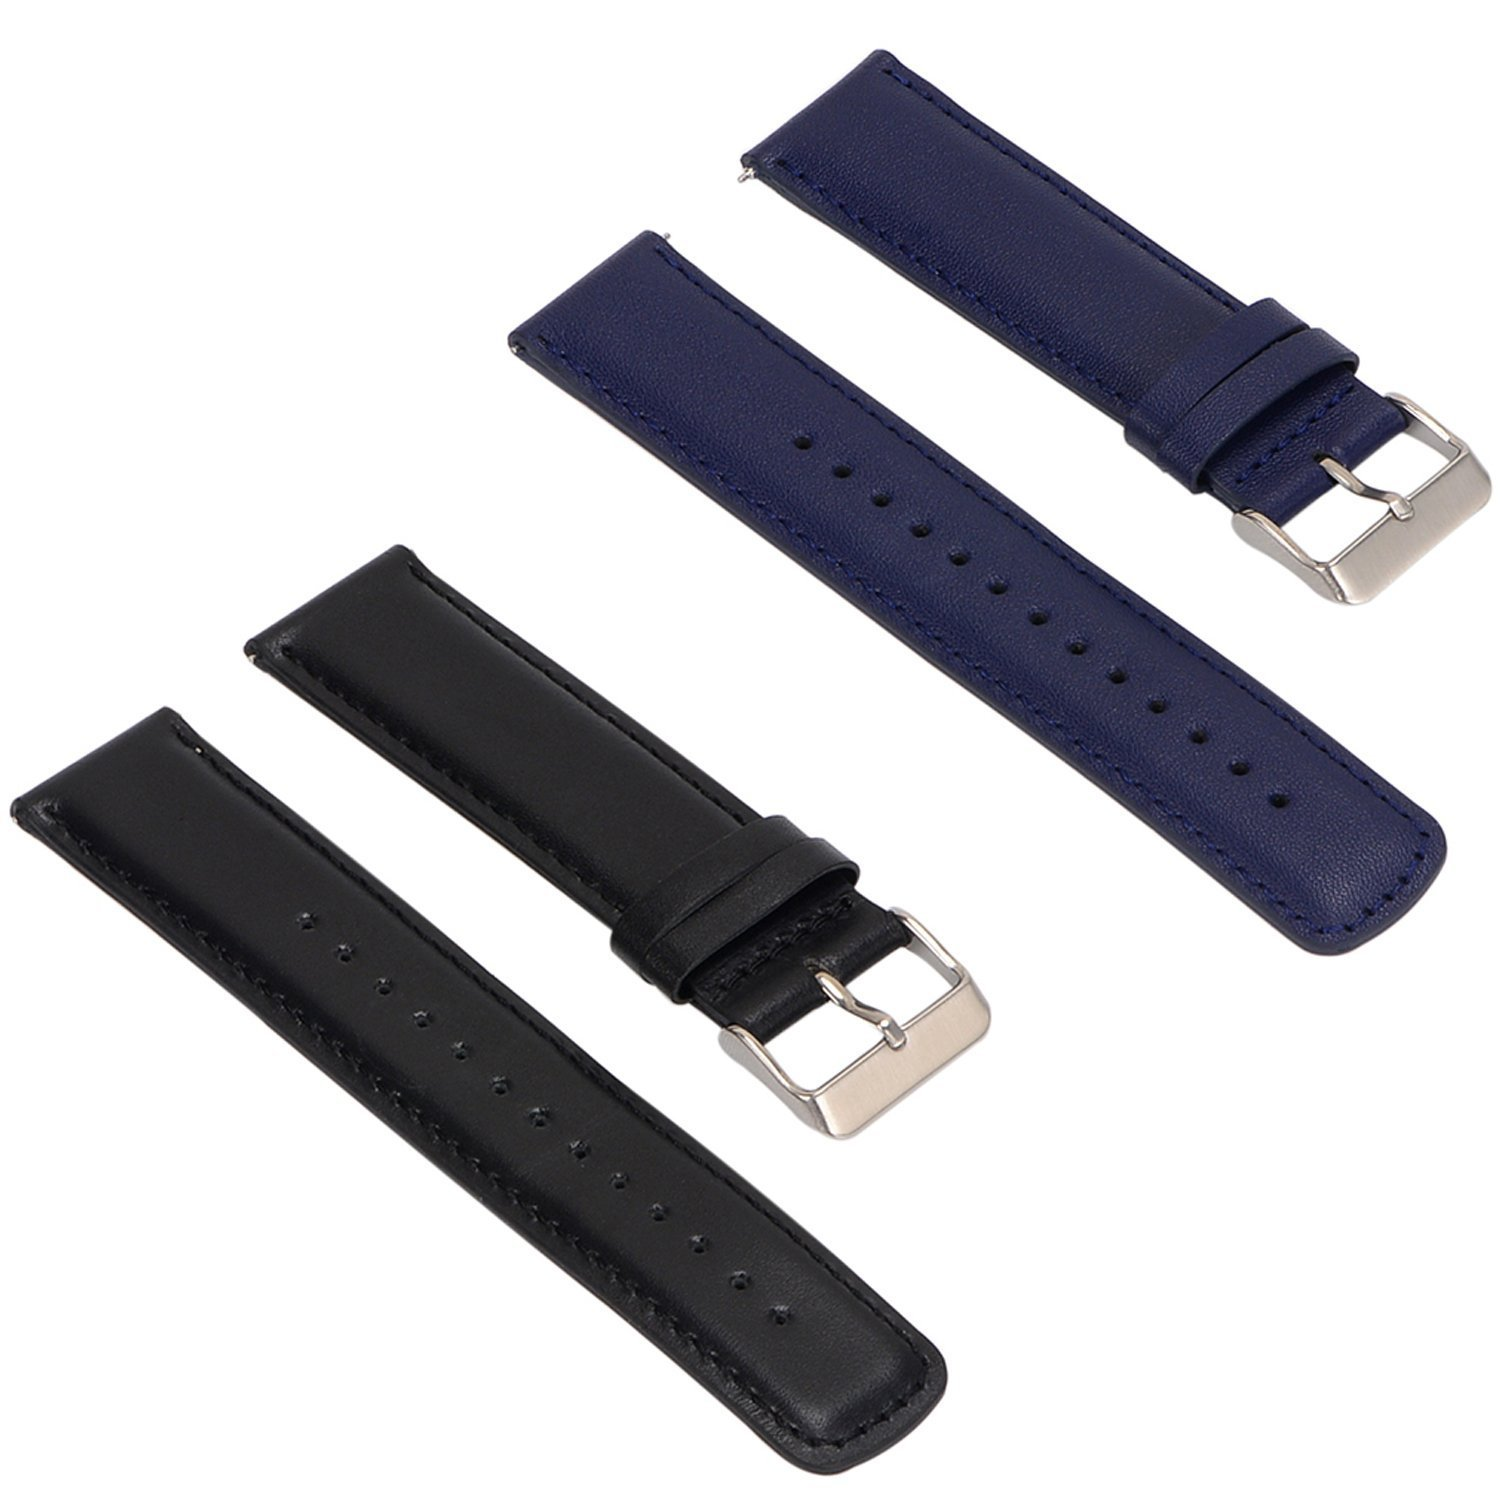 Amazon.com: ECSEM 2pcs Replacement Leather Bands Straps for ...